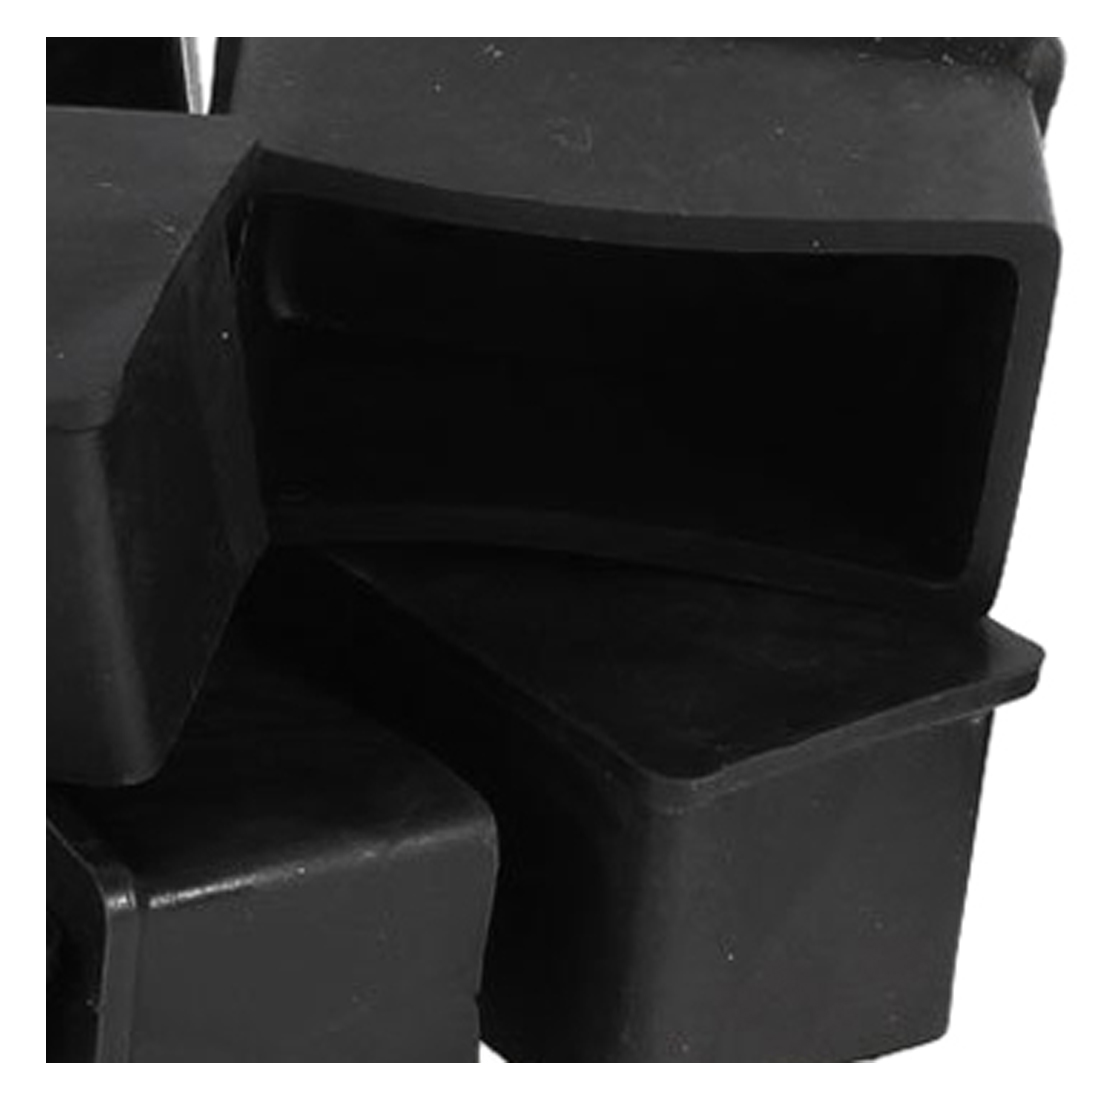 Rubber Chair Table Foot Cover Furniture Leg Protectors